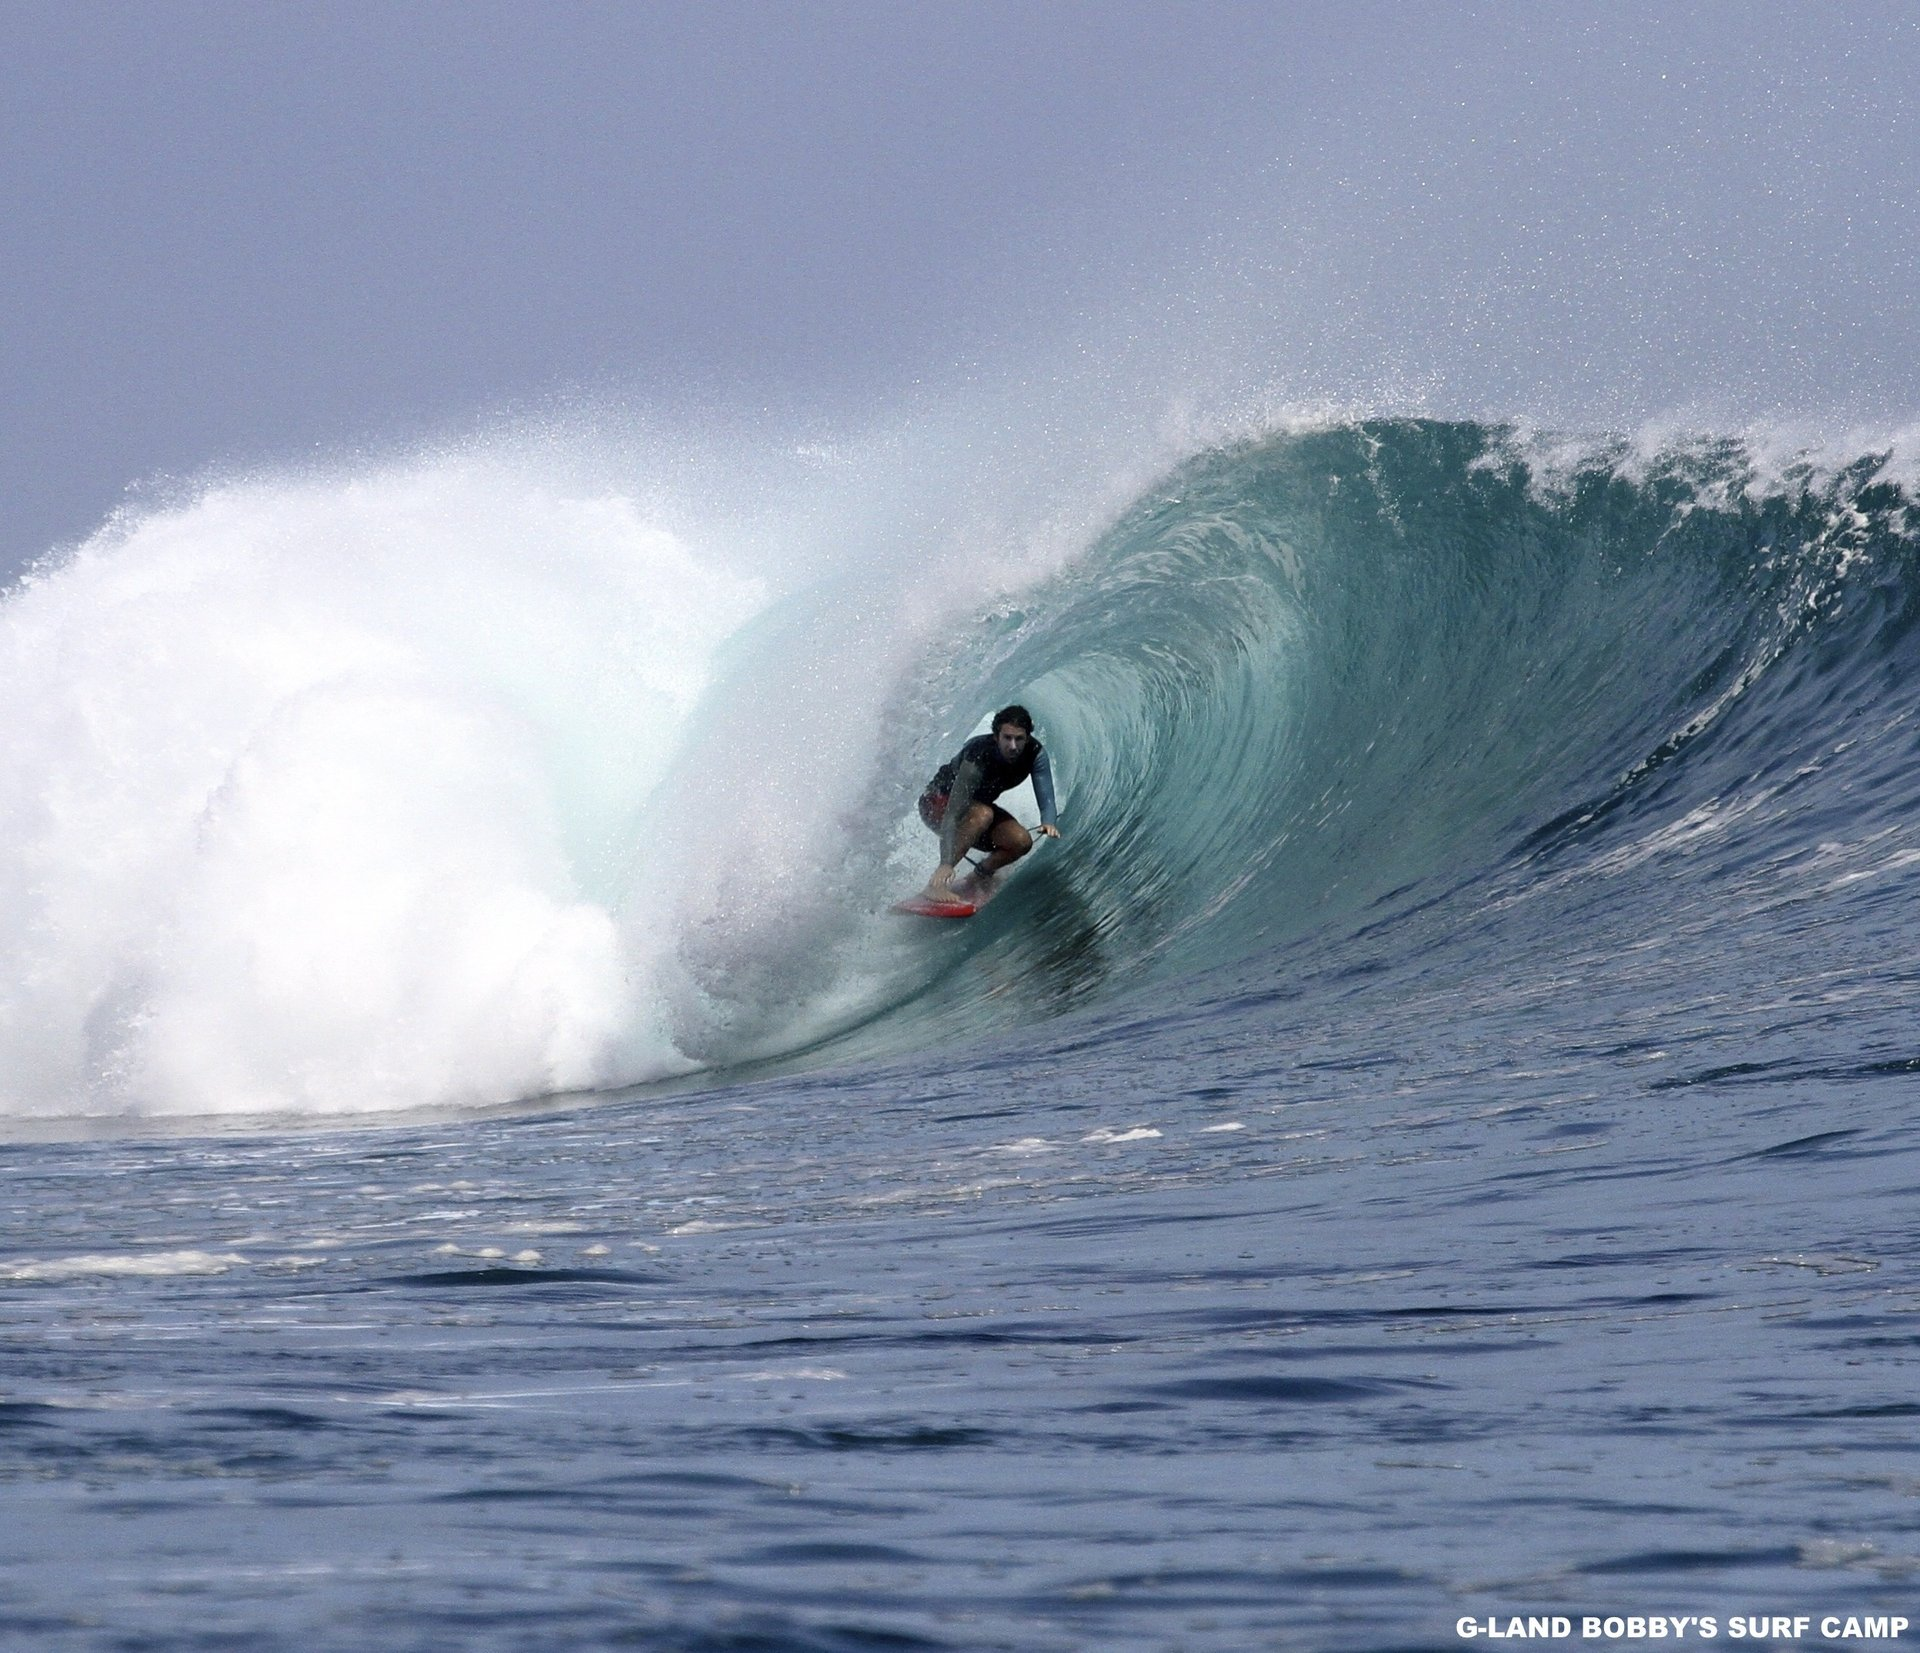 Bobby's Surf Camp's photo of G-Land